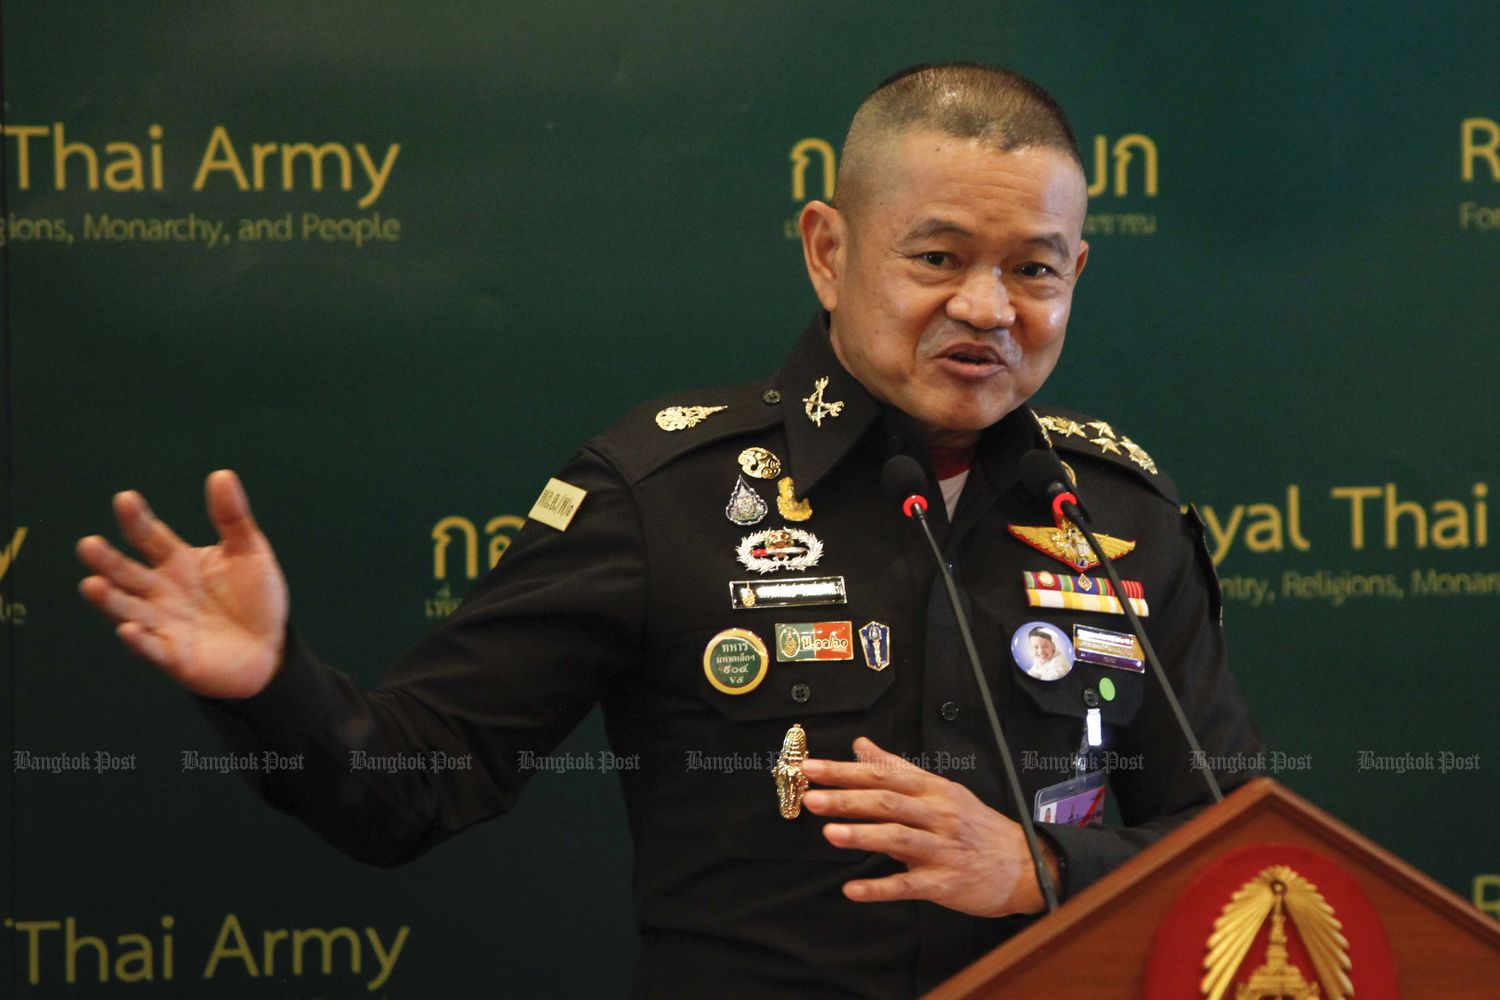 The army would not protect wrongdoers, says army chief Gen Narongphan Jitkaewtae. (Photo by Pattarapong Chatpattarasill)